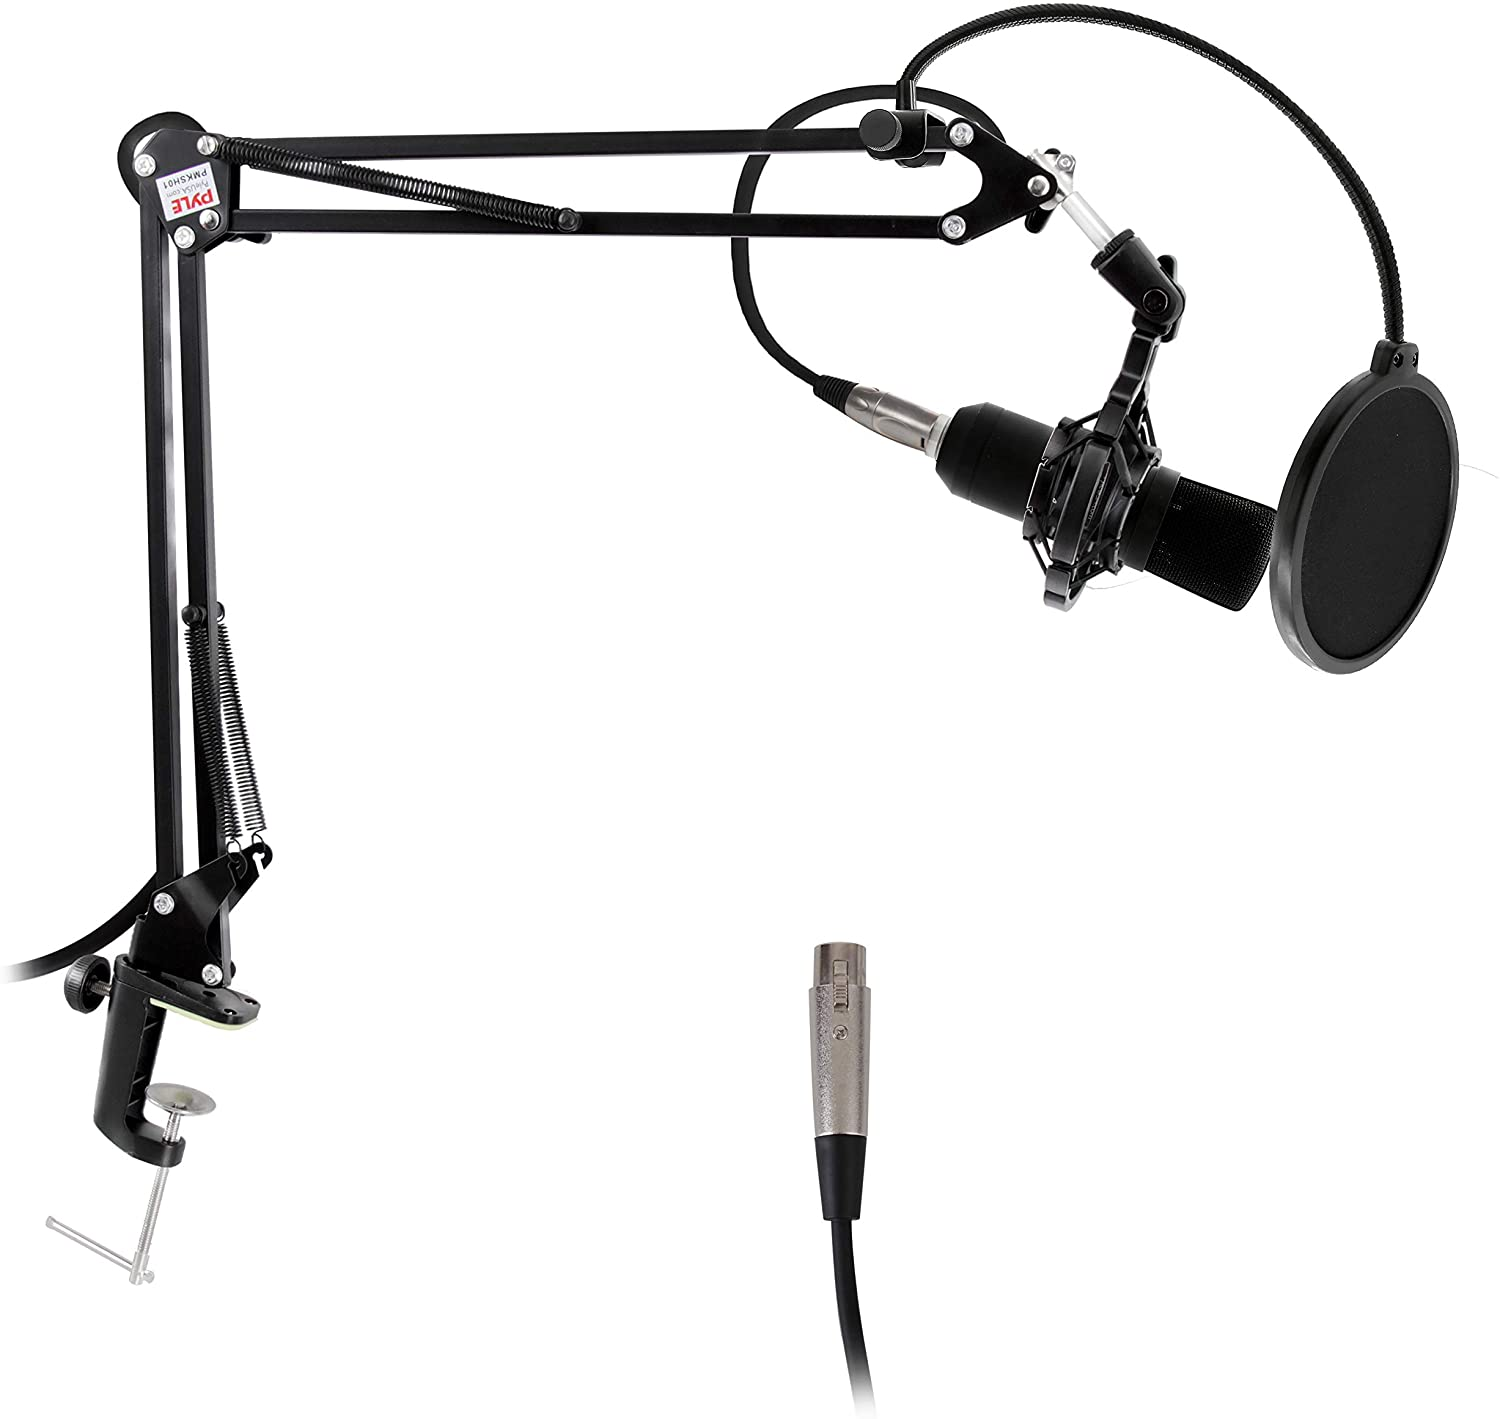 Suspension Microphone Boom Stand, Simple Clamp-Style Installation, Desktop Scissor Spring Arm Mic Stand w/ Shock Mount, Quick Setup & attached, Maximum Mic Arm Extension Dst= 2.26' ft.- Pyle (PMKSH01)